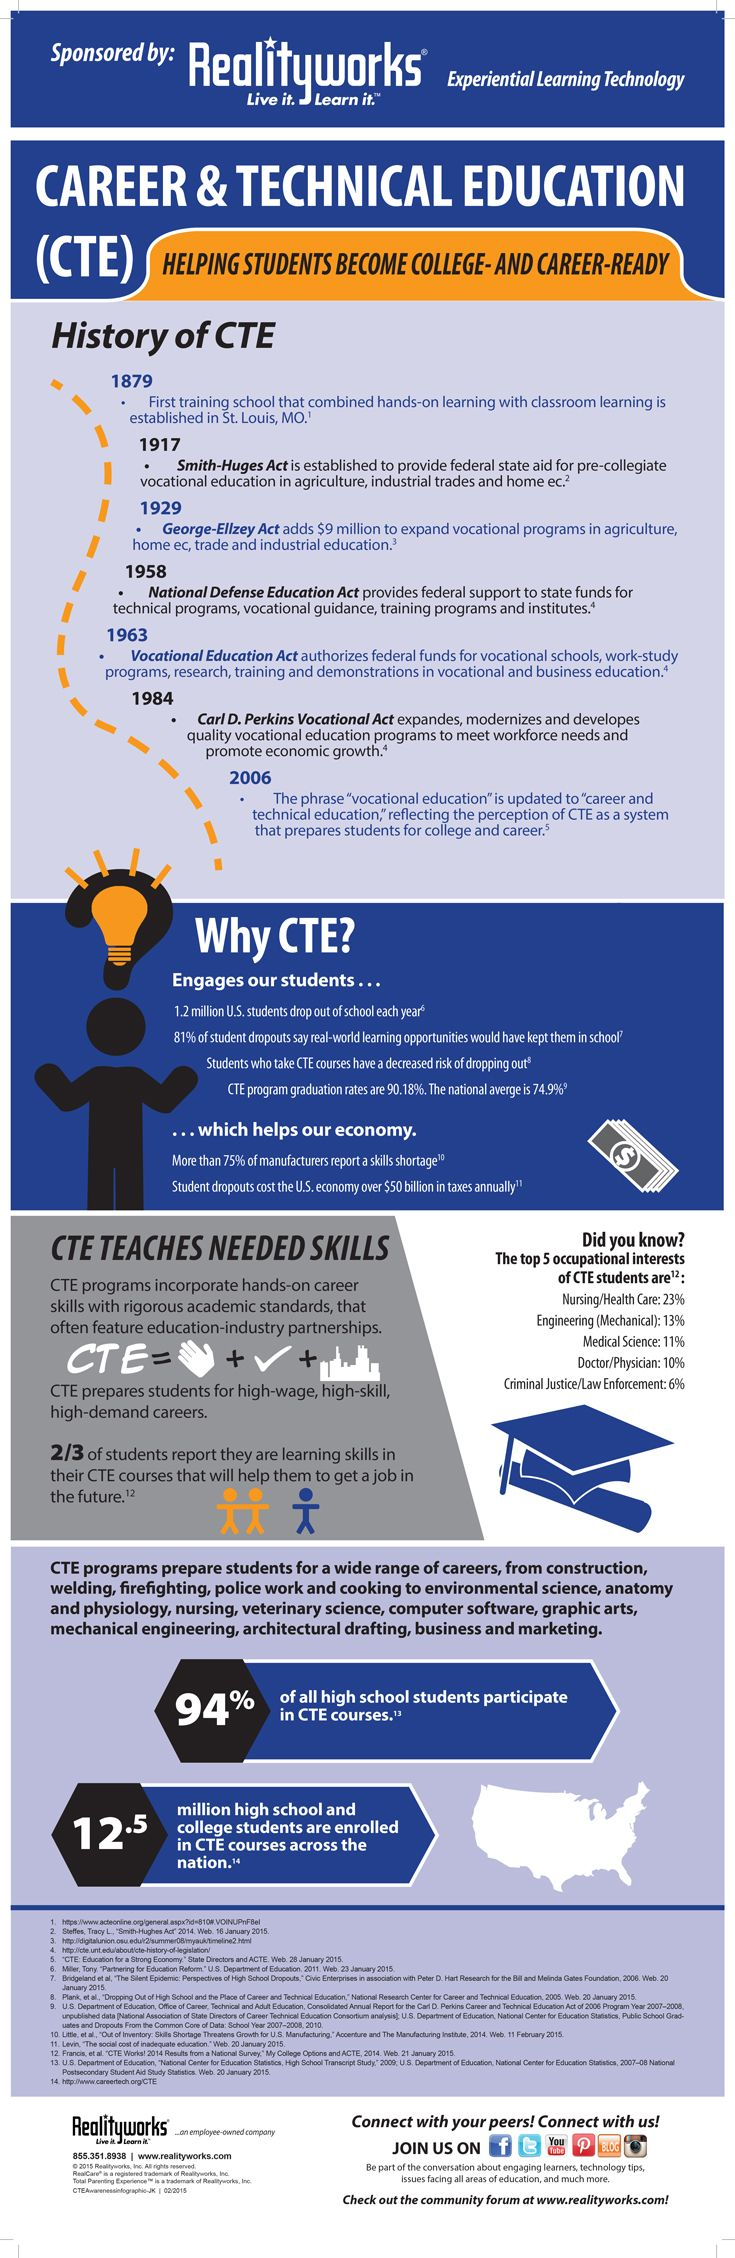 Learn the history of CTE and why career and technical education is so vital for the US economy in this free infographic - just in time for CTE Month 2015! | From Realityworks.com